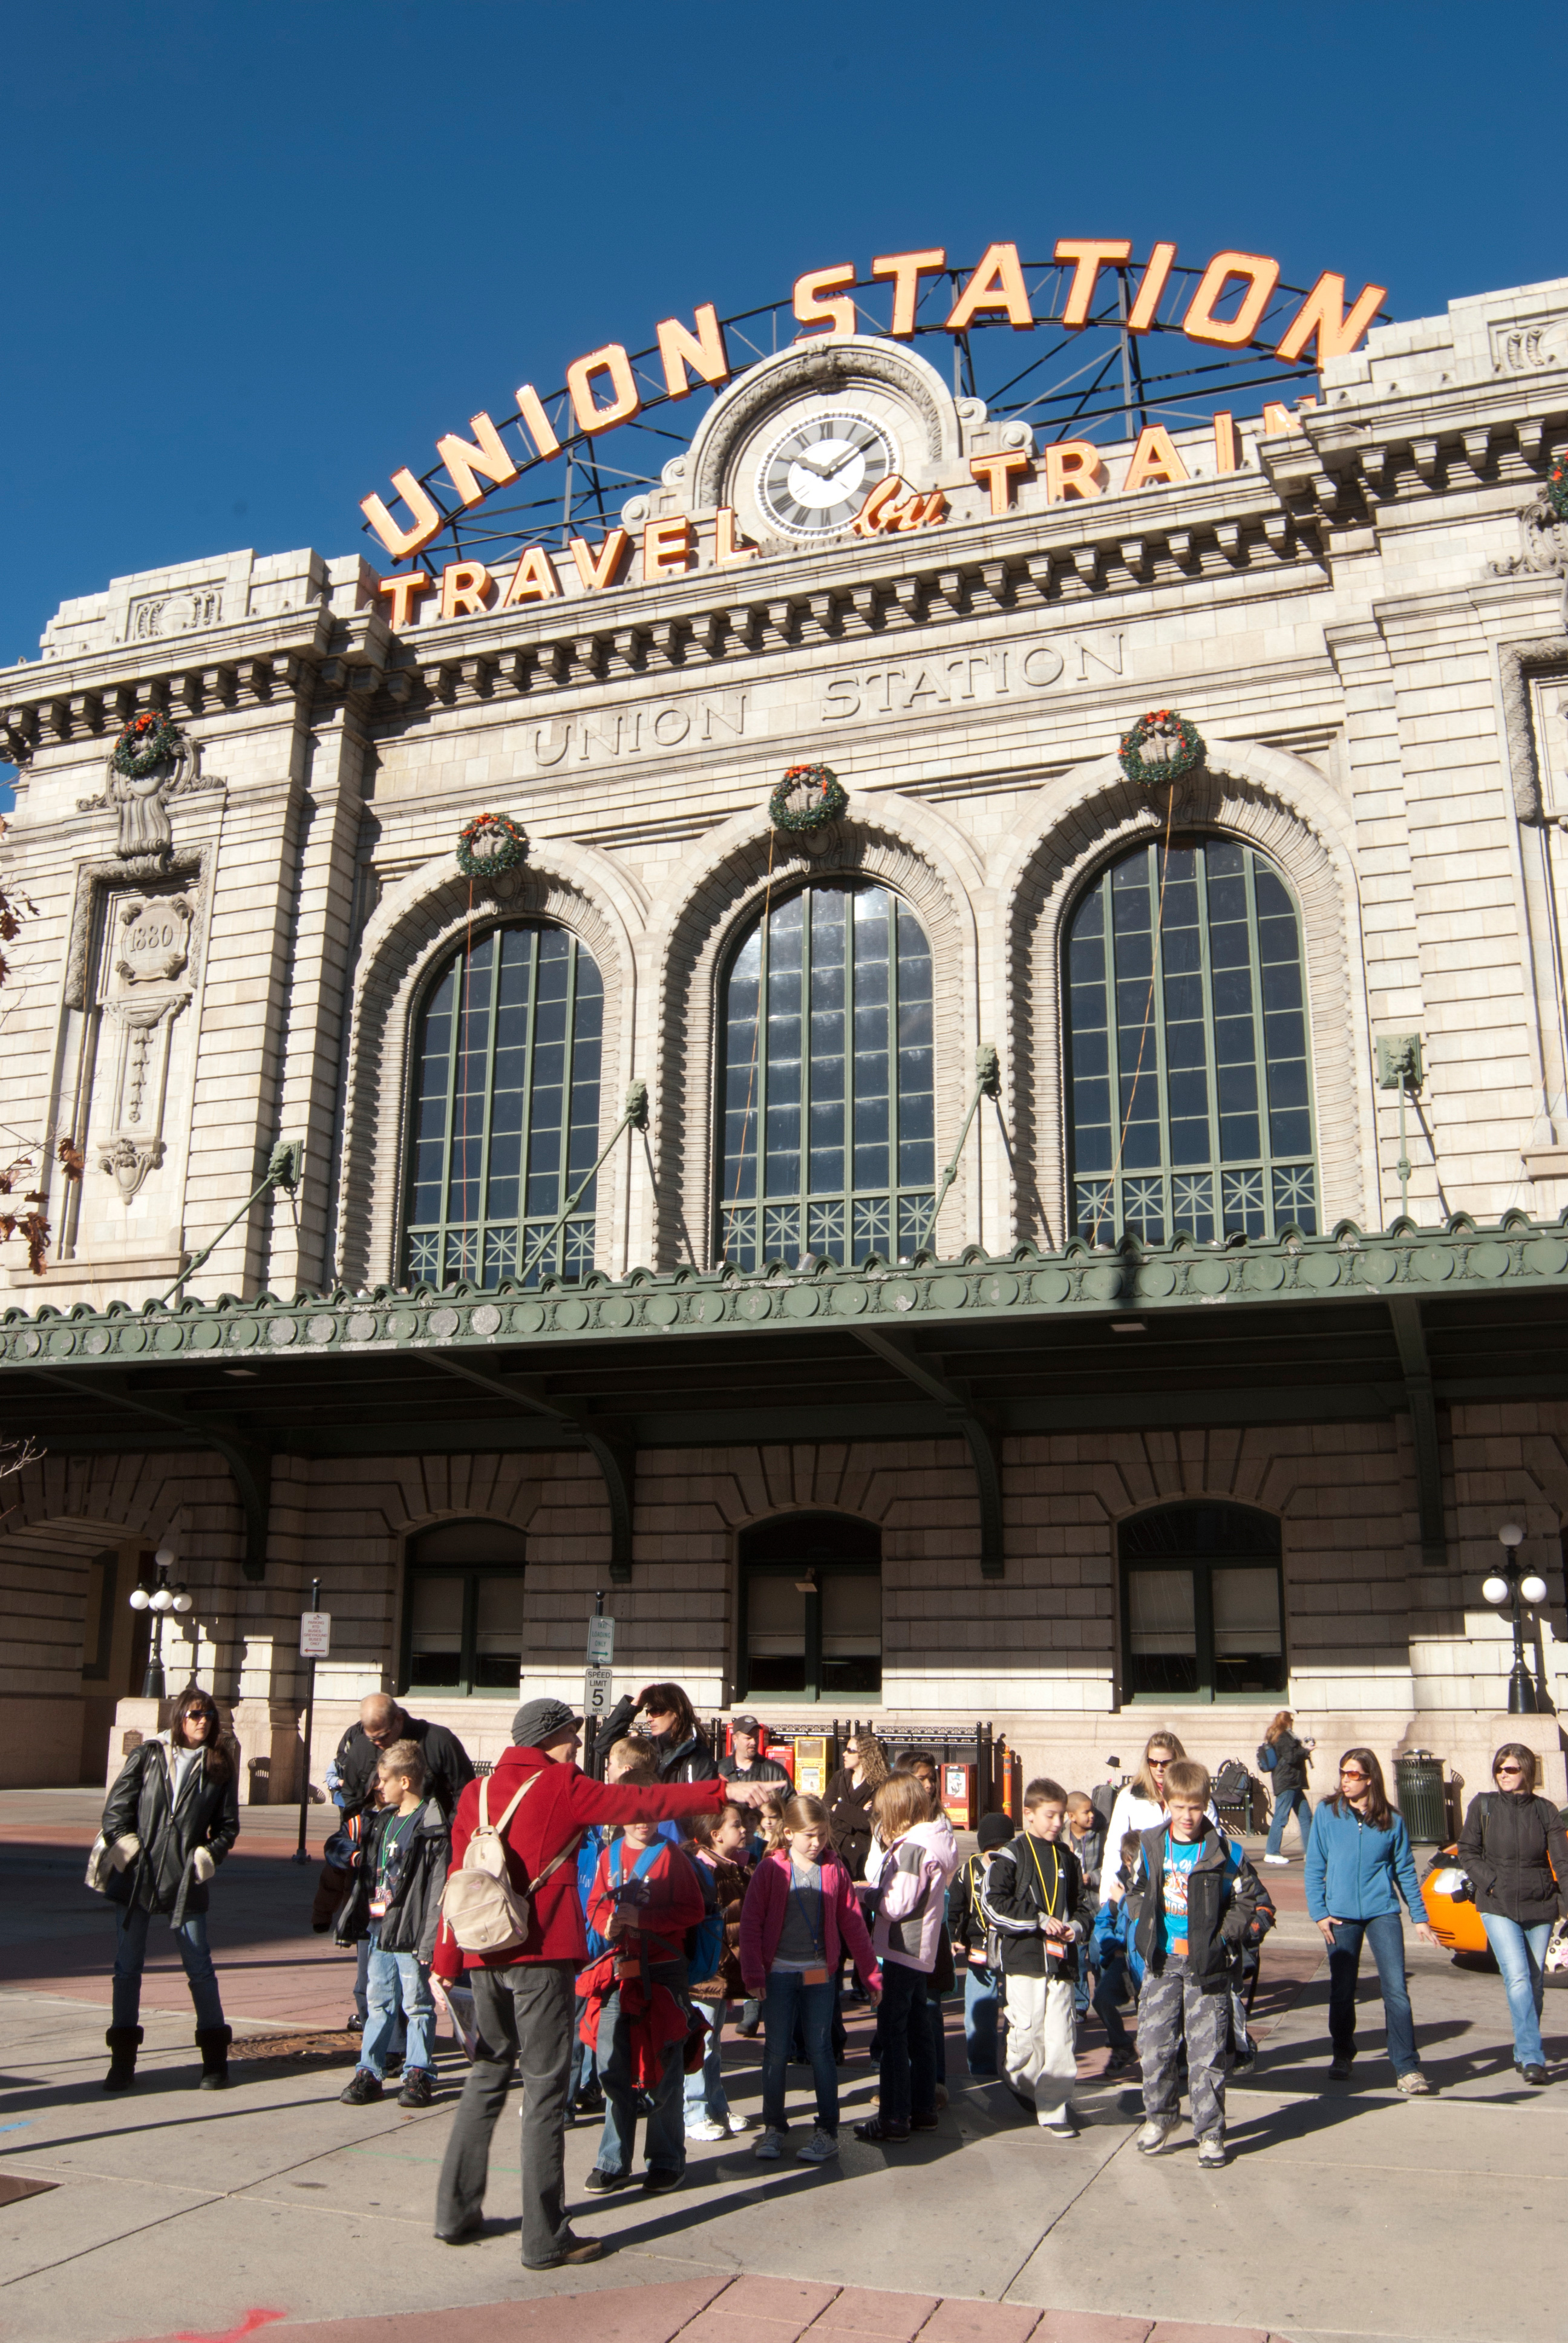 Union Station walking tour